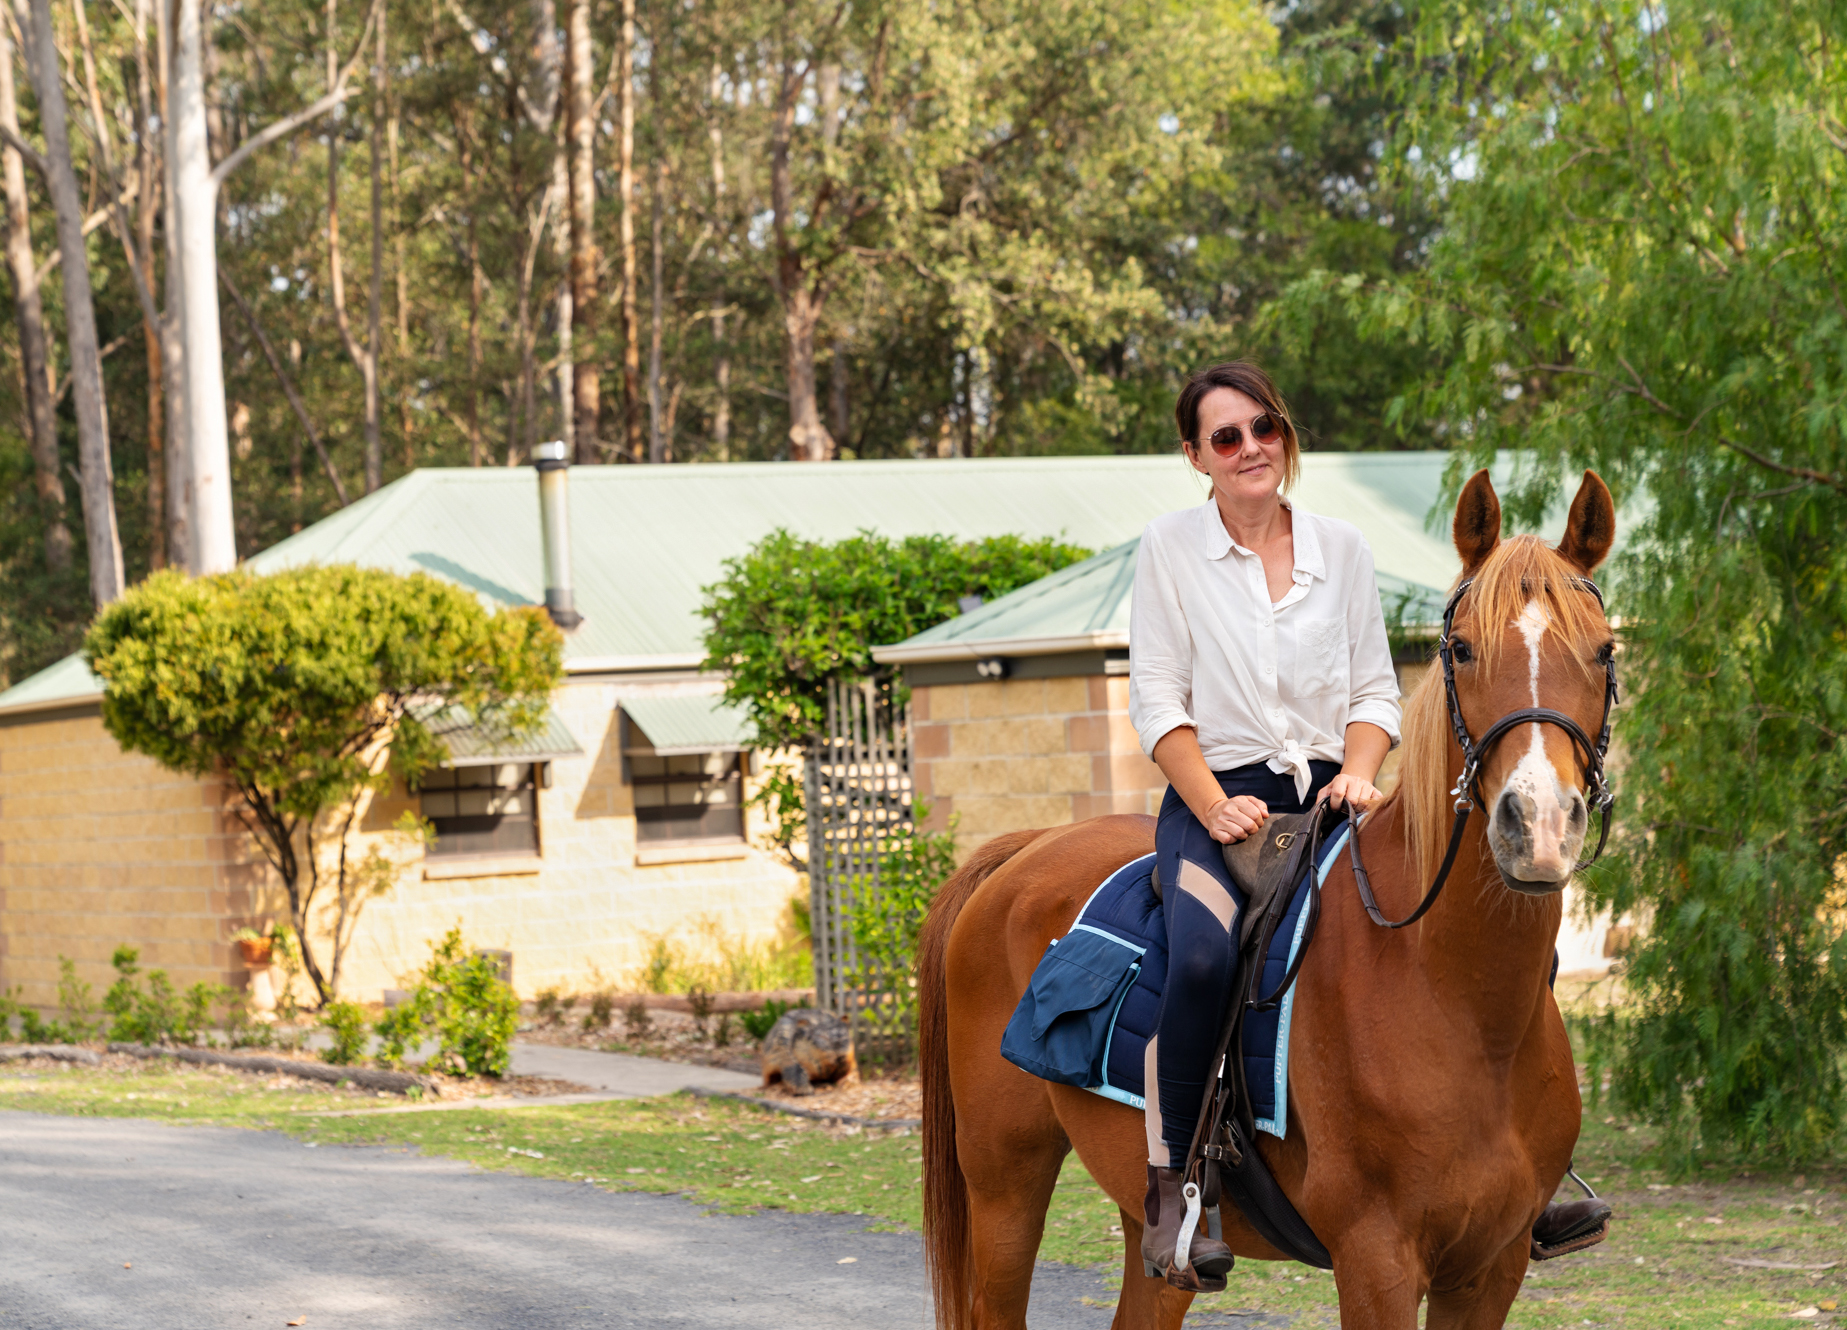 Meet our Guide: Tiffany - The Shoalhaven Ride, Australia - Globetrotting horse riding holidays